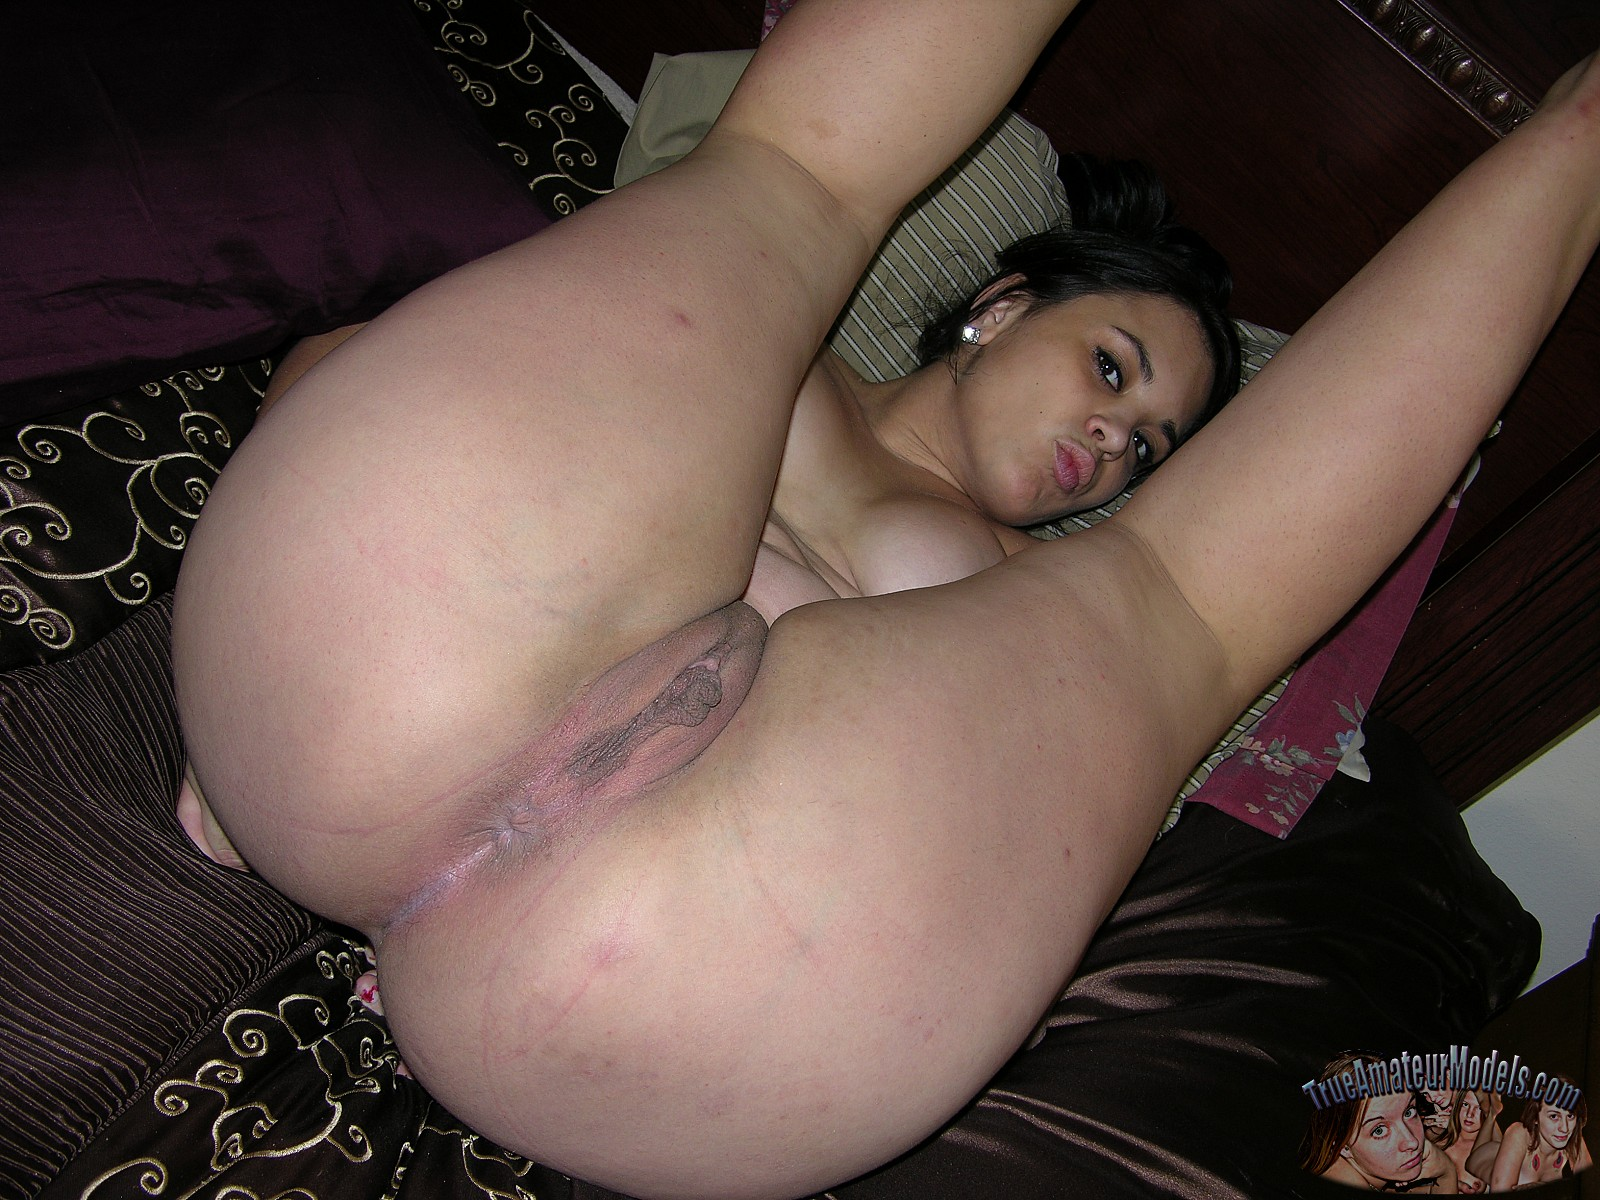 Best amateur wife pussy